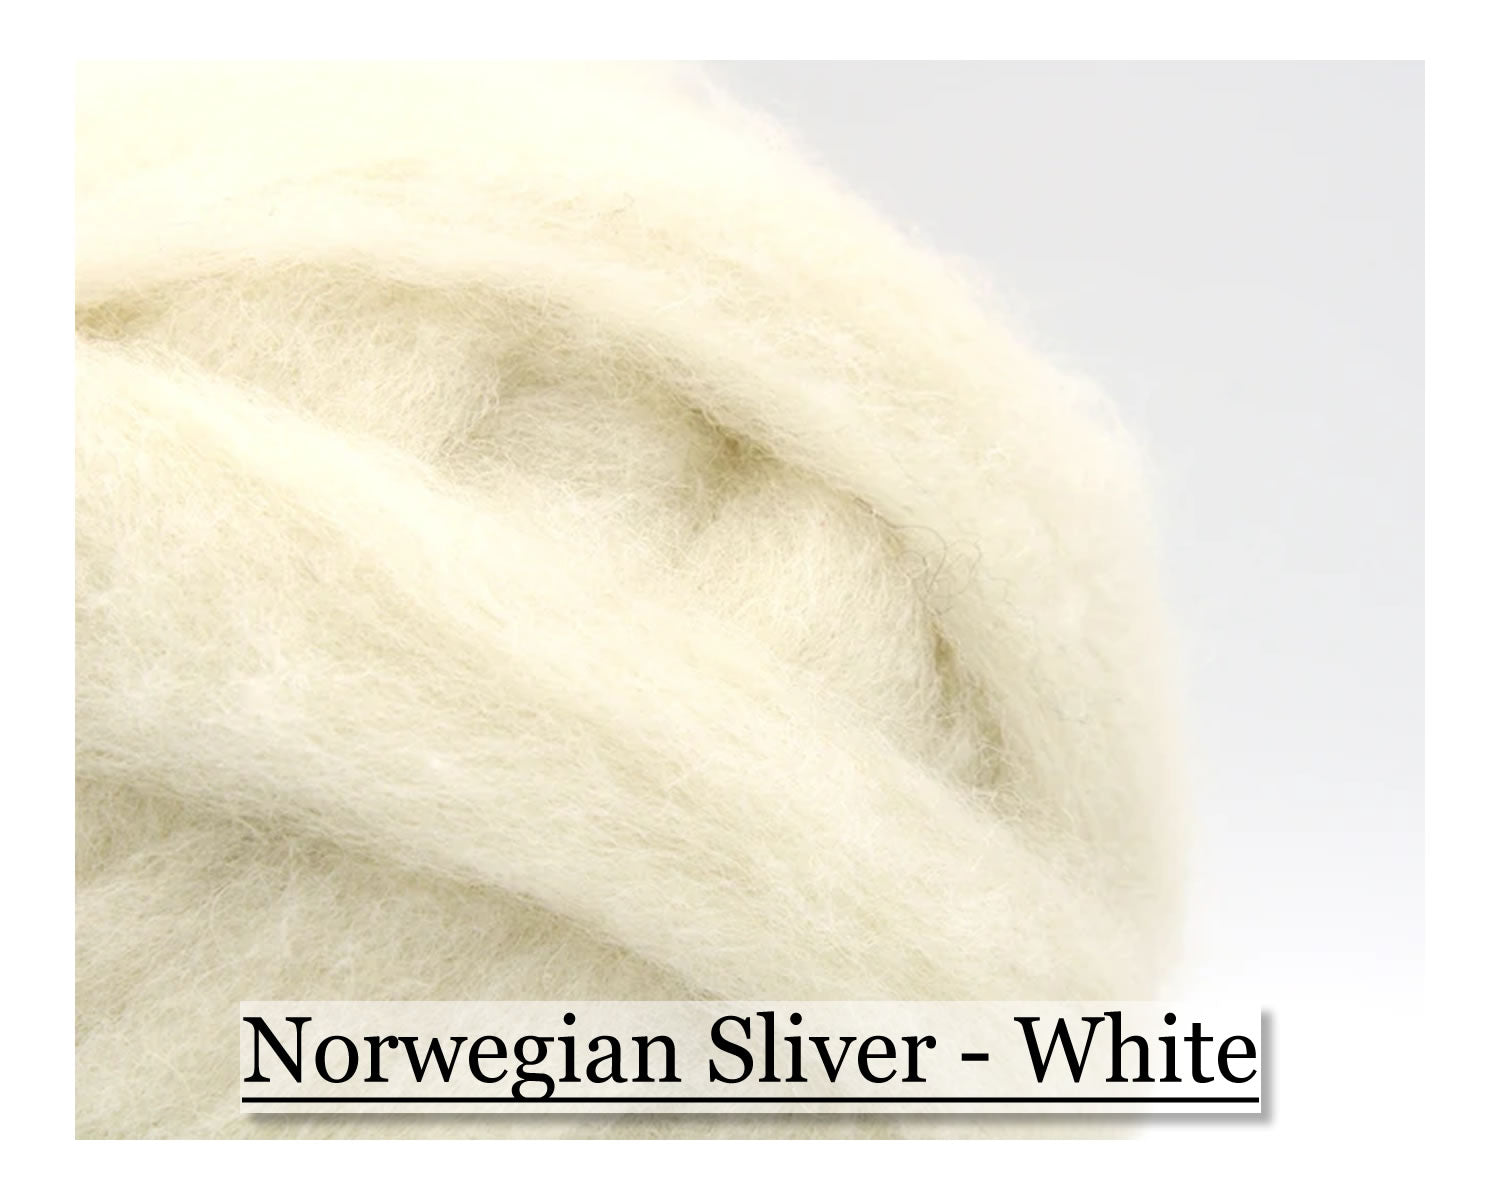 Norwegian Sliver - White - 16oz